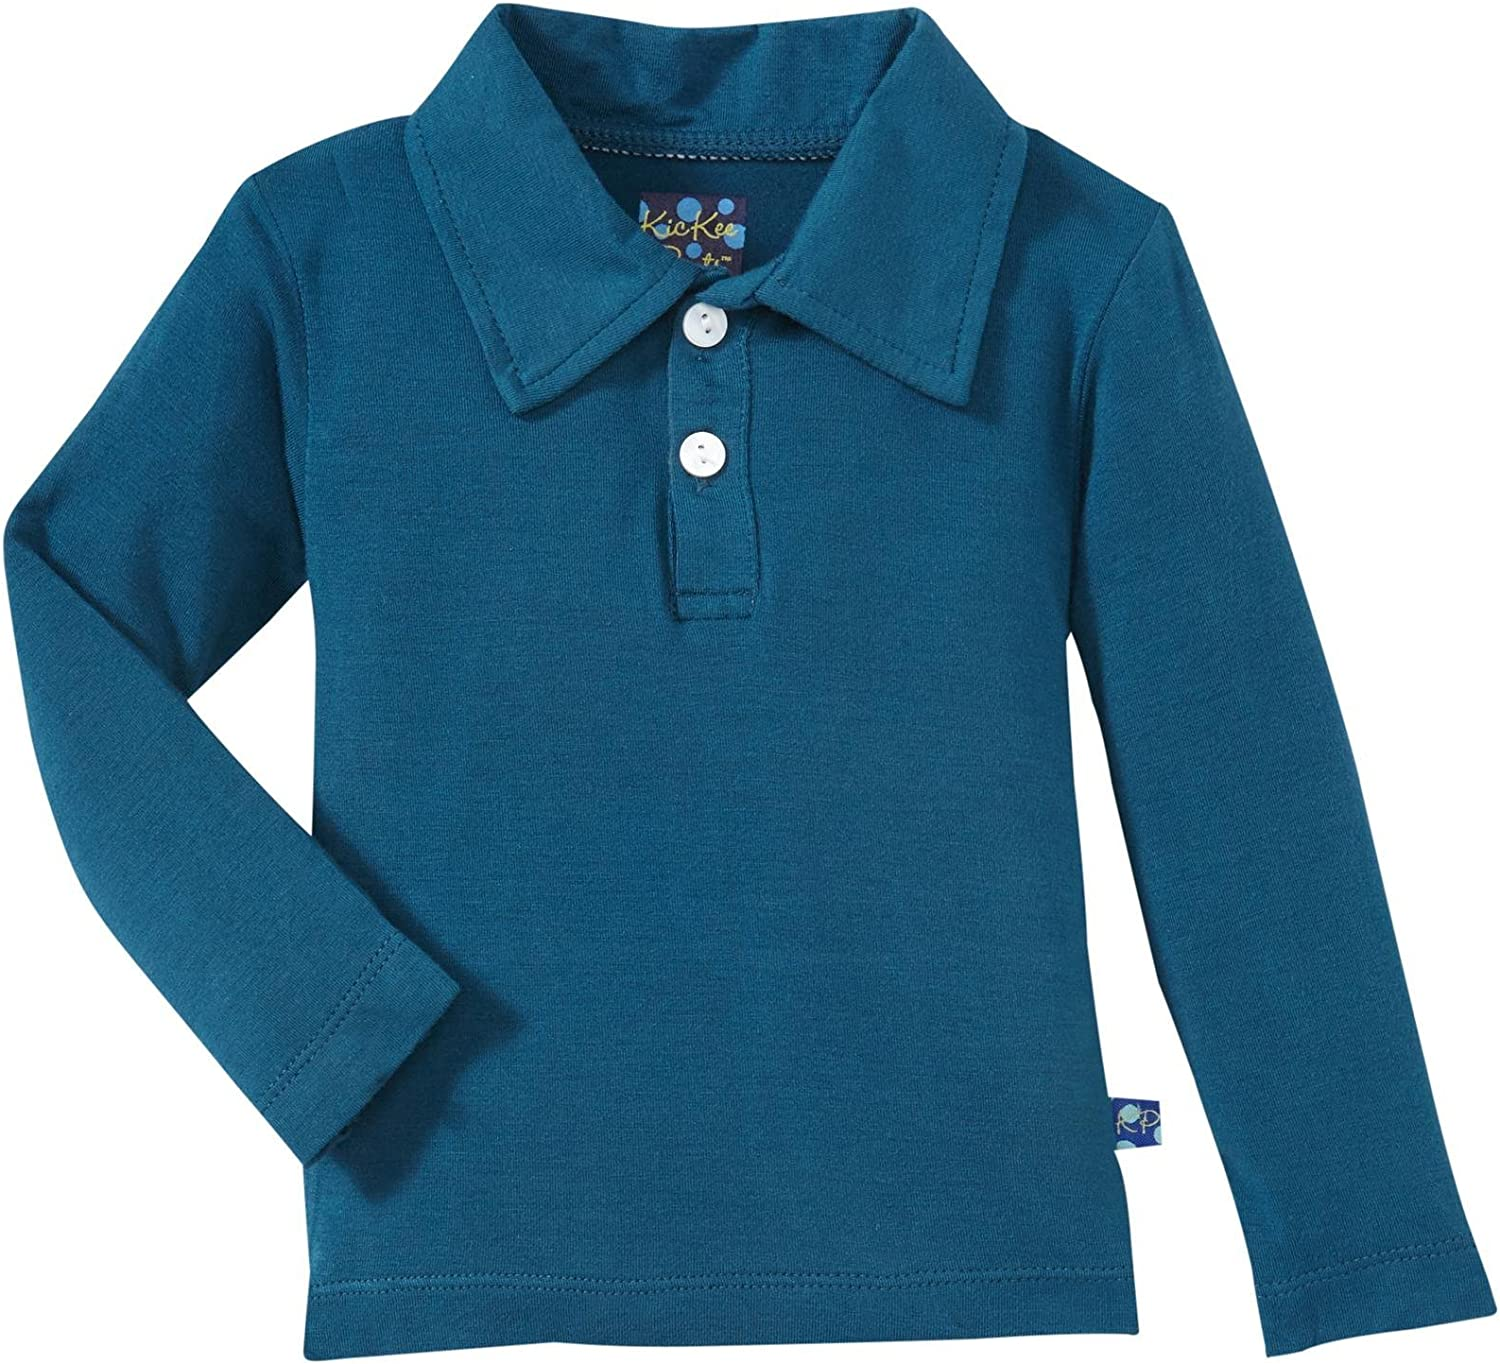 KicKee Pants Baby Boys' Polo (Baby) - Peacock - 12-18 Months